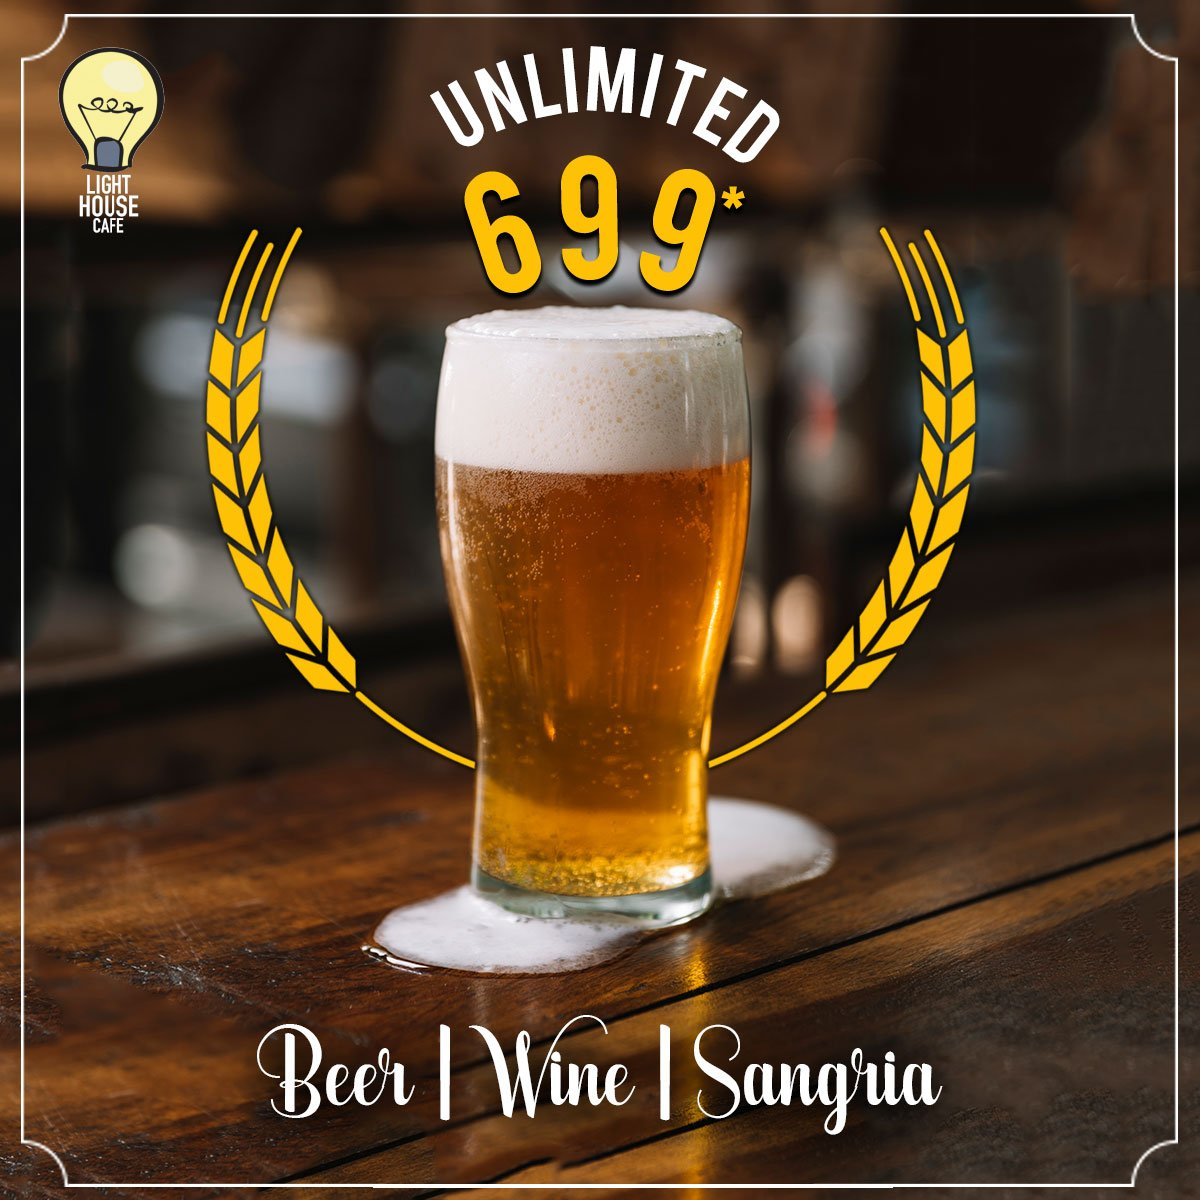 Make your week more interesting with our Unlimited 699 Offer only at Light House Cafe Mumbai  #LHC #Worli #Mumbai #Zomato #Blogpost #bloggers #Weekday #CurlyTales #Weekends #Thingstodo #Mumbaifoodie #Foodgasm #mumbaifood #indianblogger #dailyfoodfeed #blogspot #Beer #BeerFest